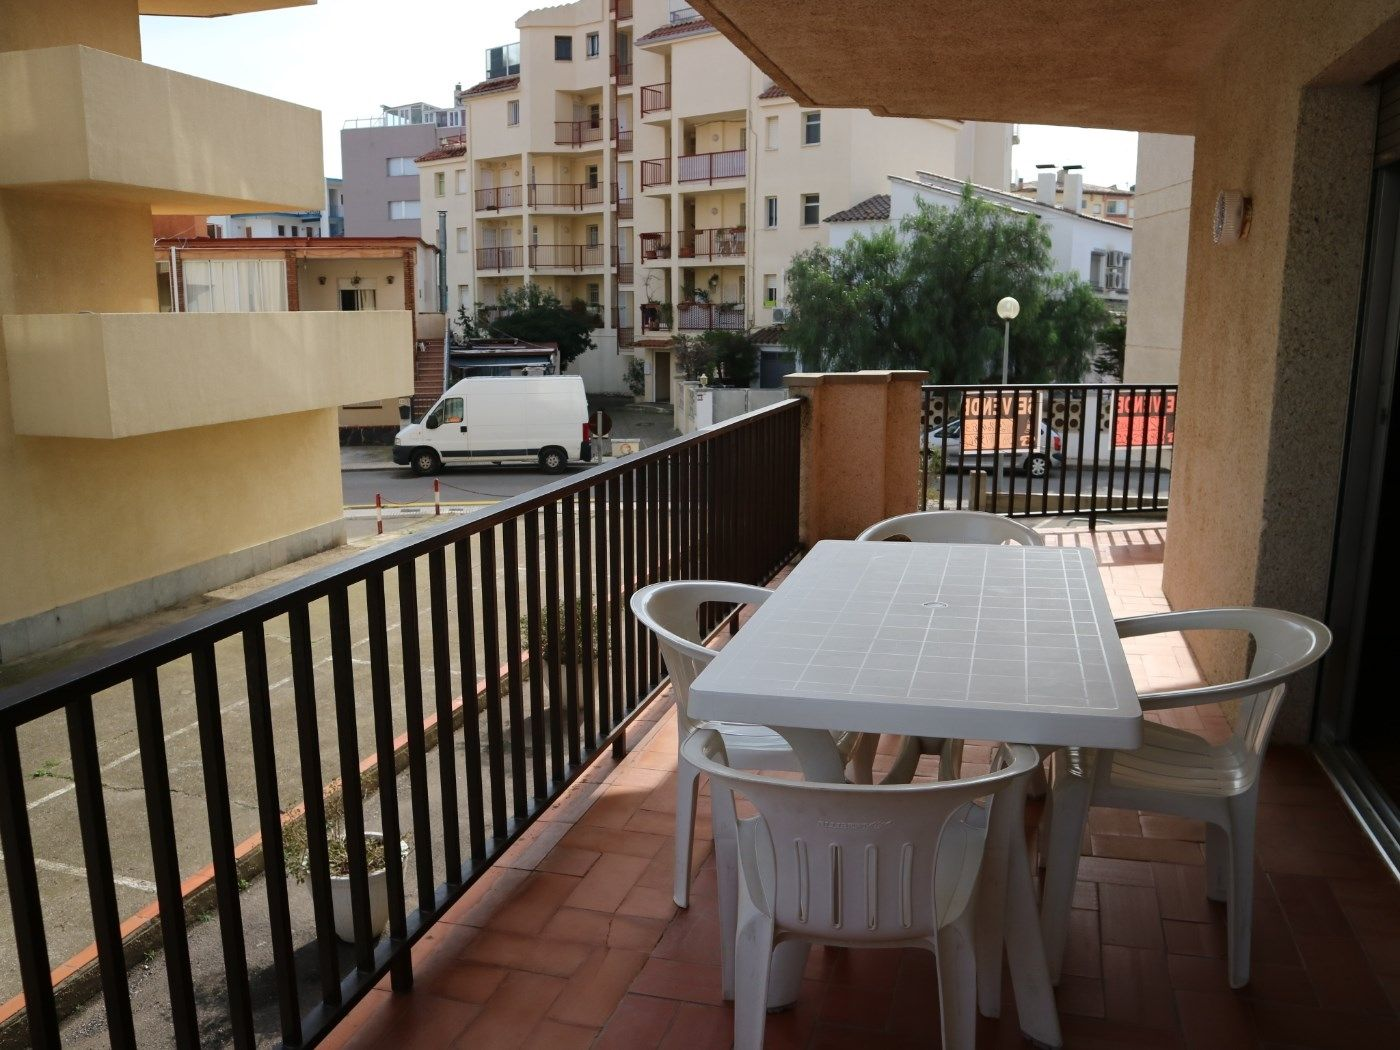 Appartement in Carrer punta del mig (de la), 13. A 200m de la playa